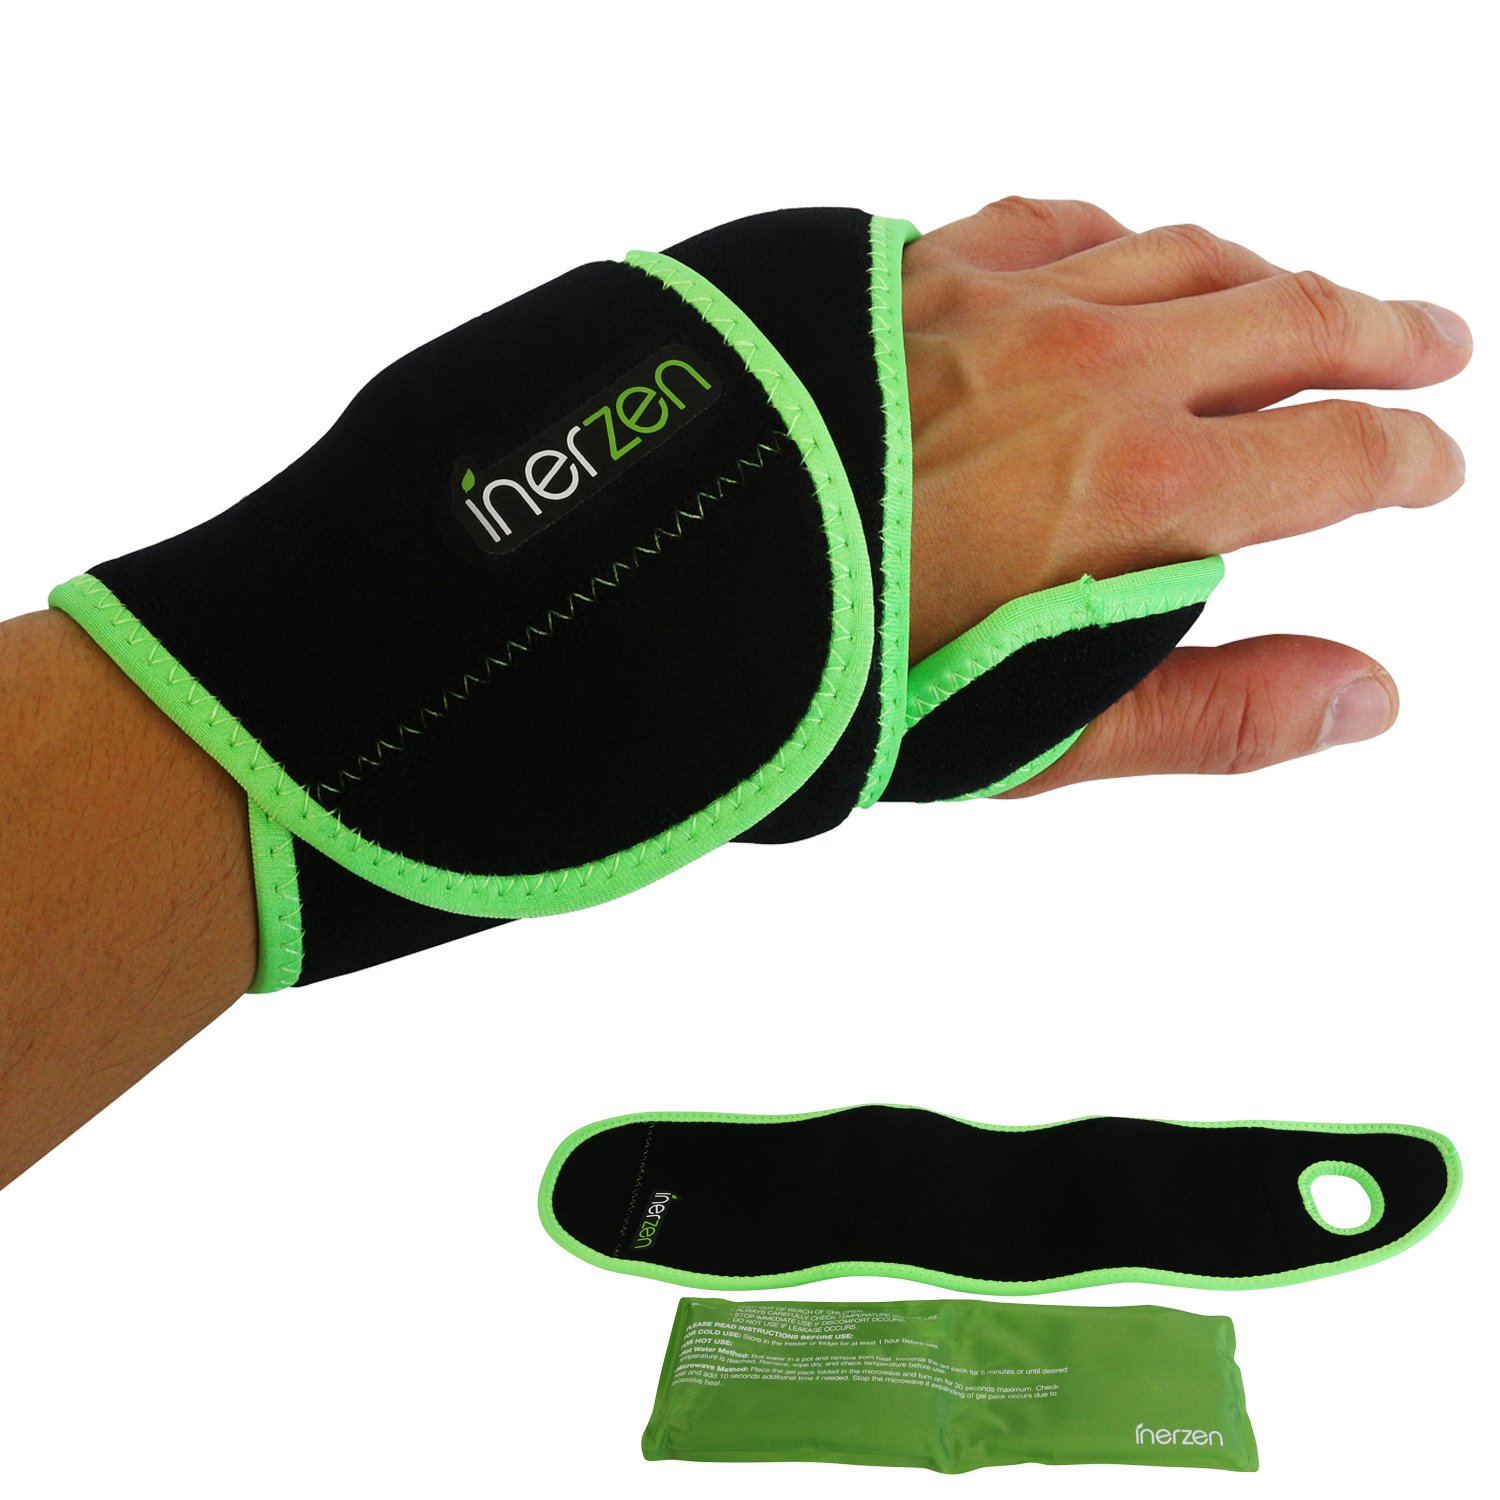 Inerzen Wrist Support Hot and Cold Gel Therapy Wrap - Includes Hot or Cold Gel Pack for Pain Relief - Microwavable, Freezable, Reusable (One Size Fits All) by Inerzen